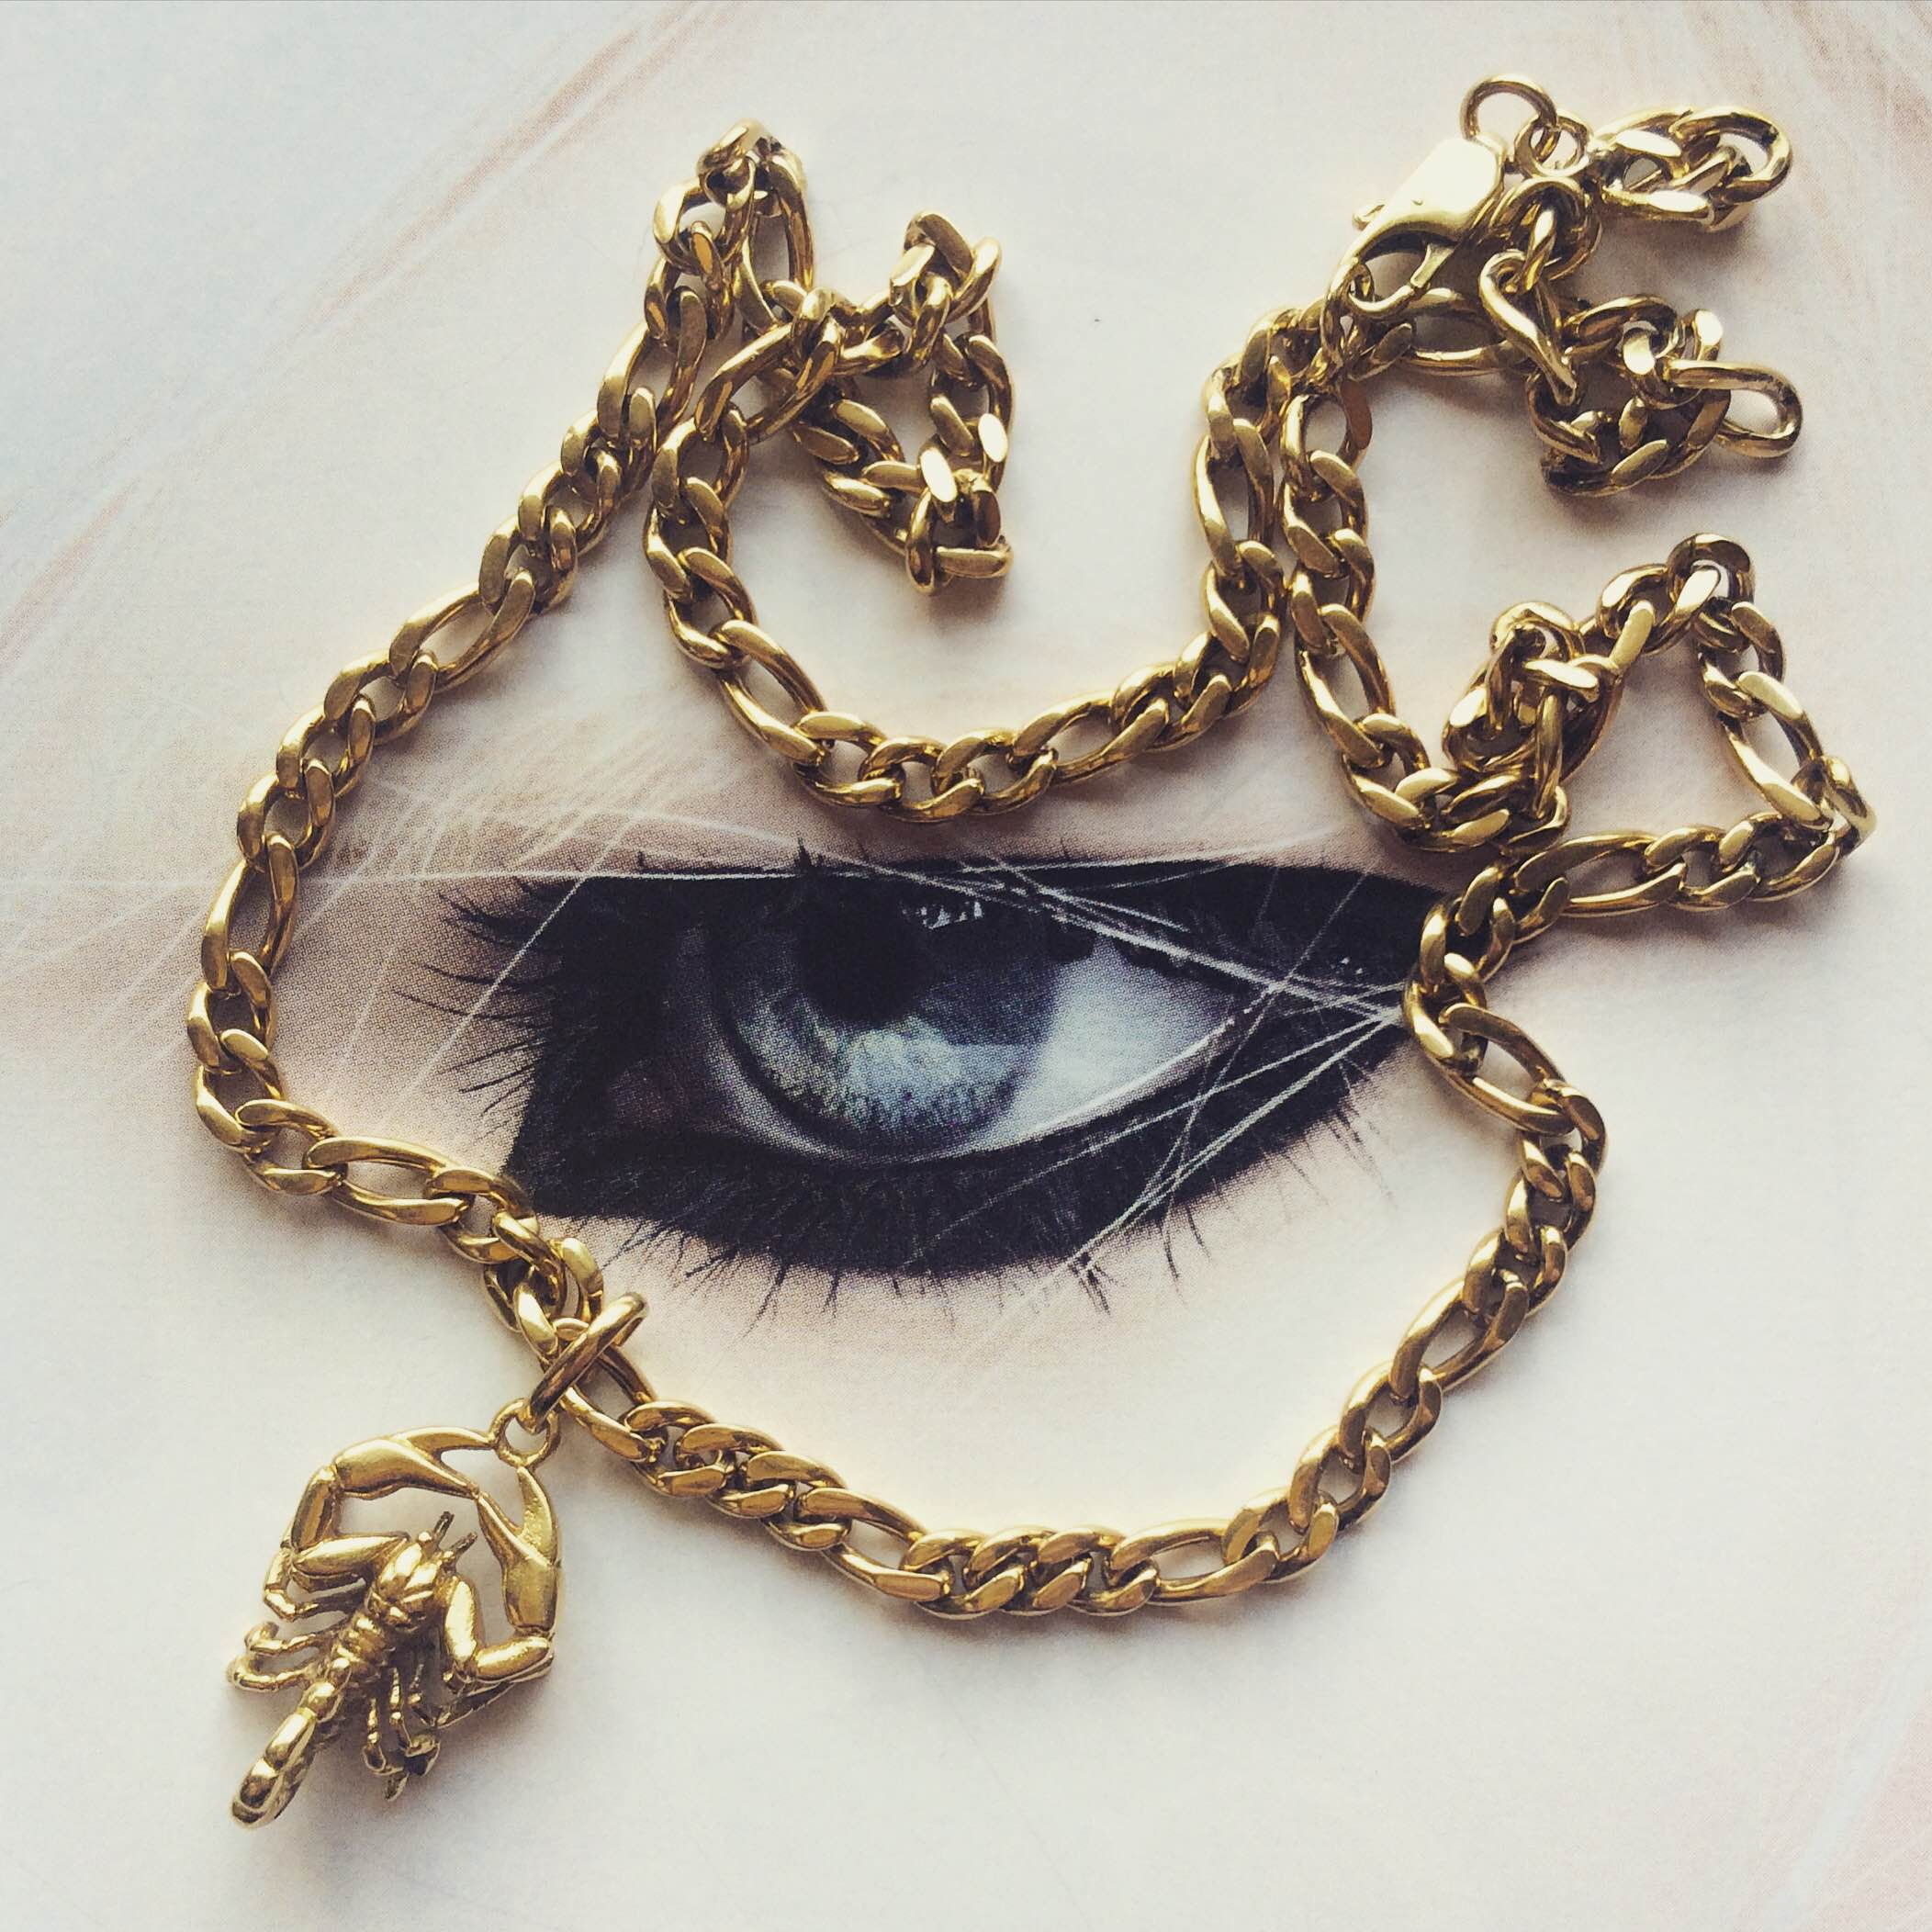 The scorpion pendant Nora inherited from her Dad. Made from solid 18k gold, she assumes it's worth a small fortune.